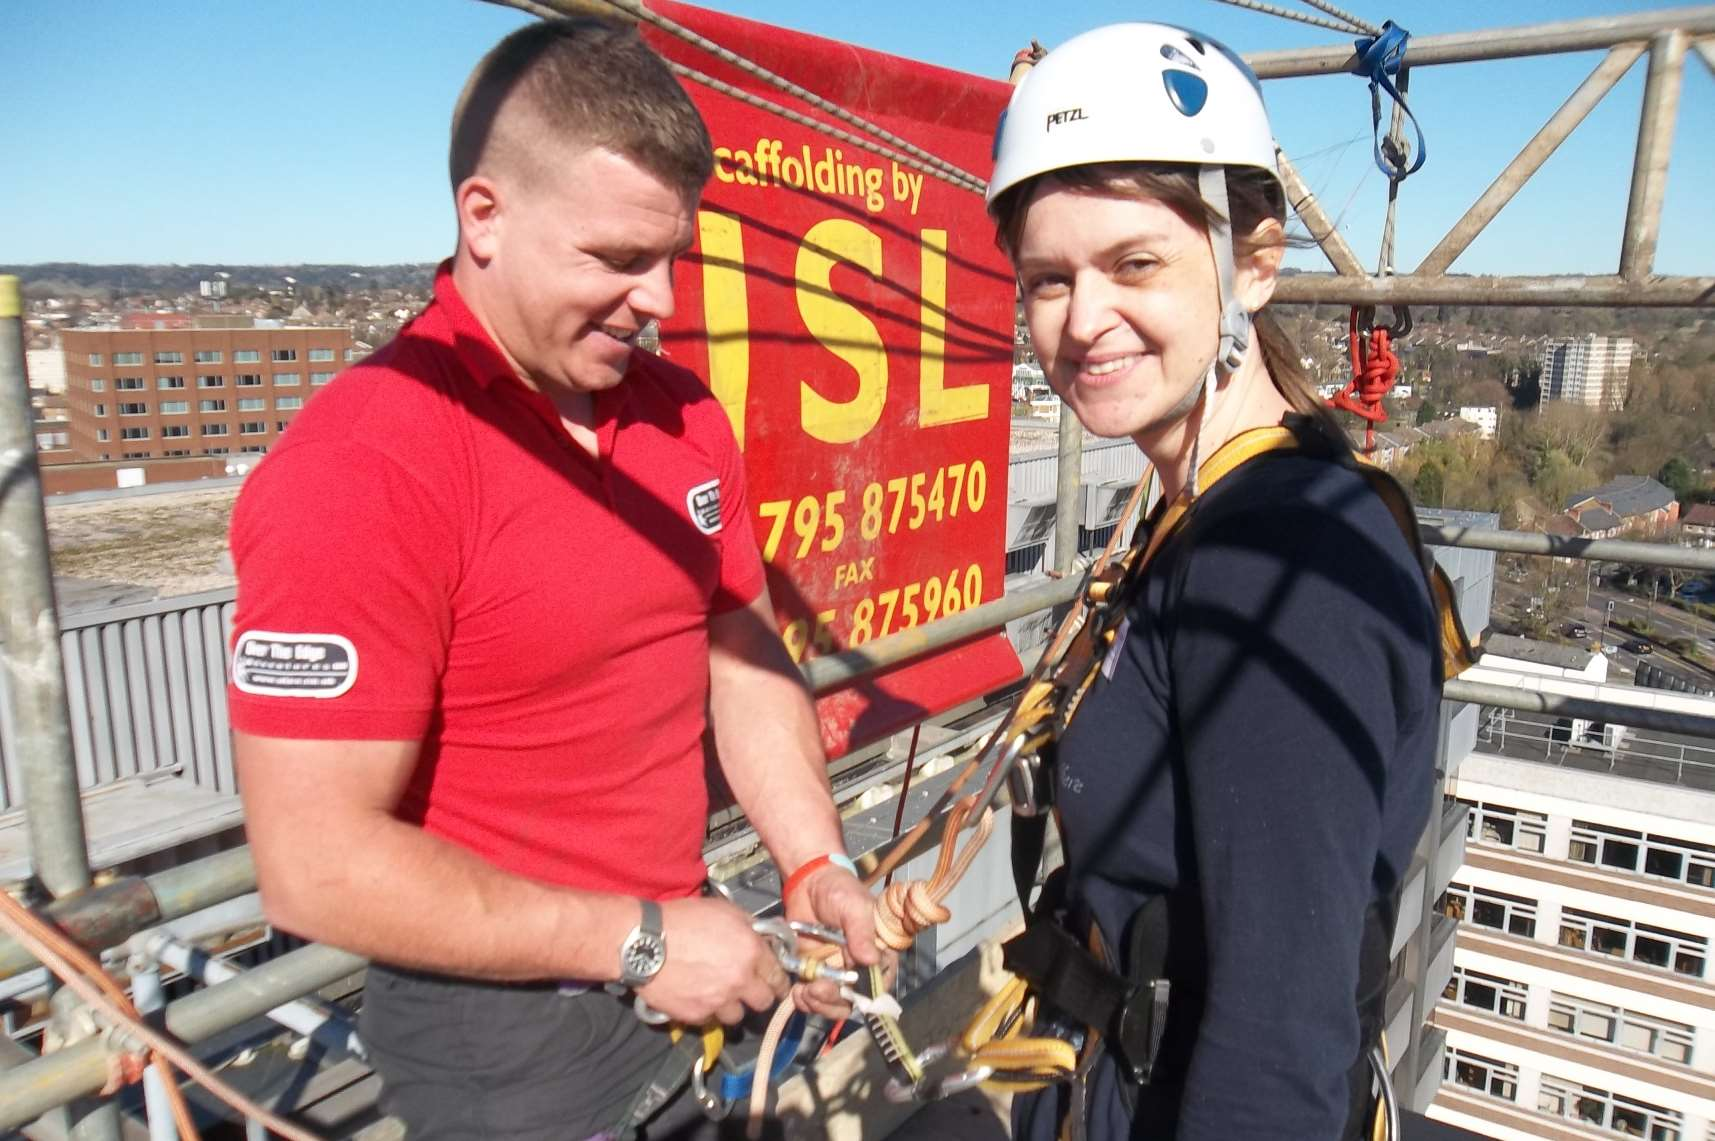 Ann-Marie Langley of Maidstone from event sponsor DSH being briefed by abseil instructor Joe Lovelock.